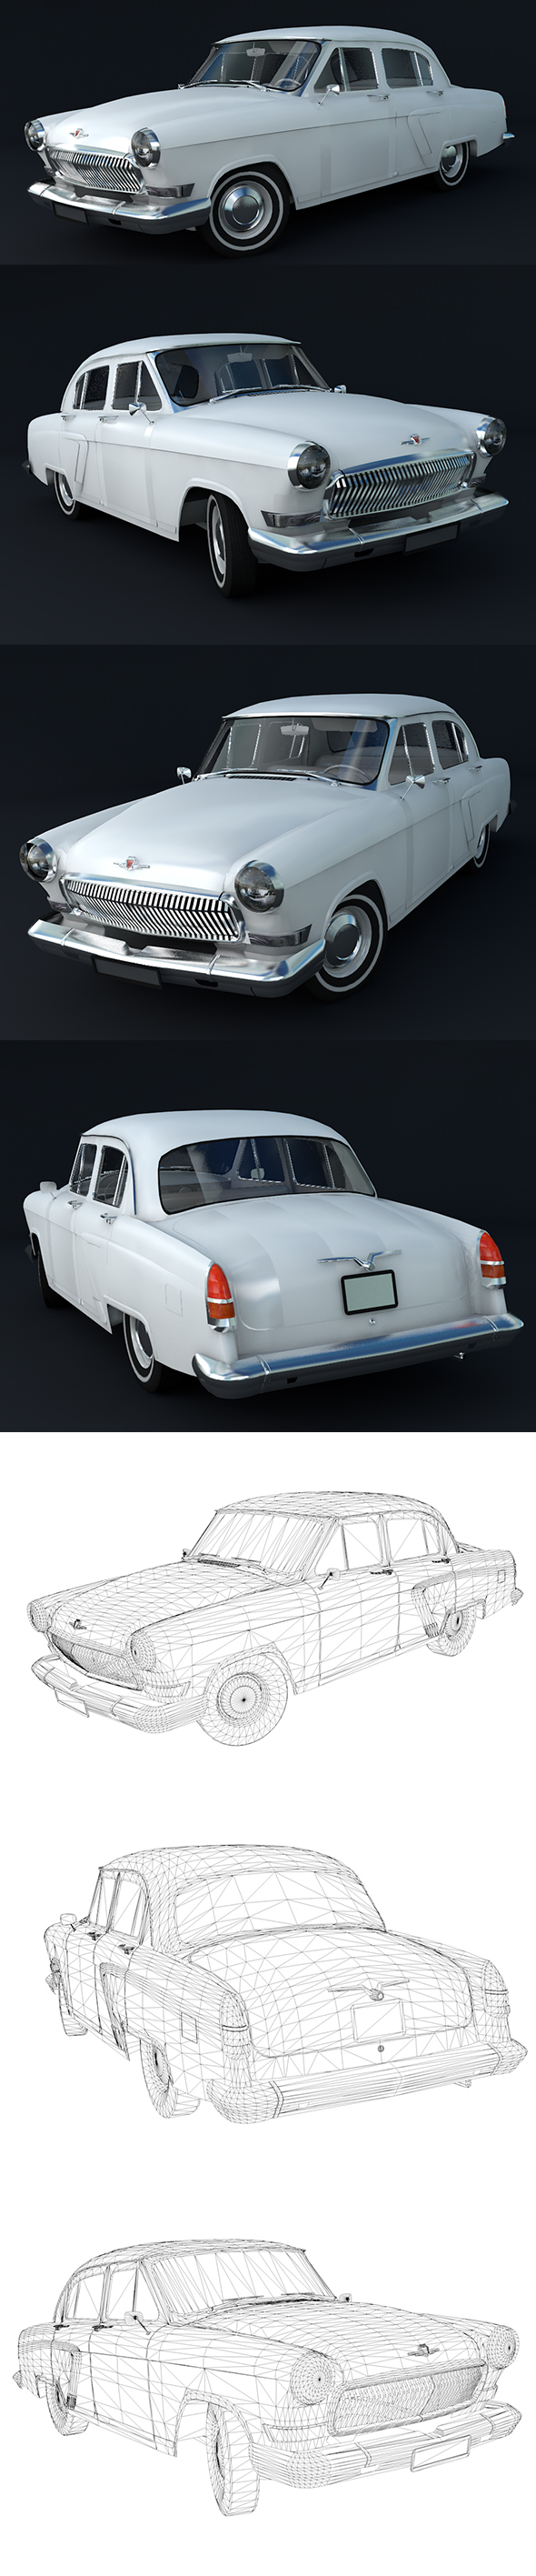 Volga Gaz 23 - Full Textures with Full details - 3DOcean Item for Sale